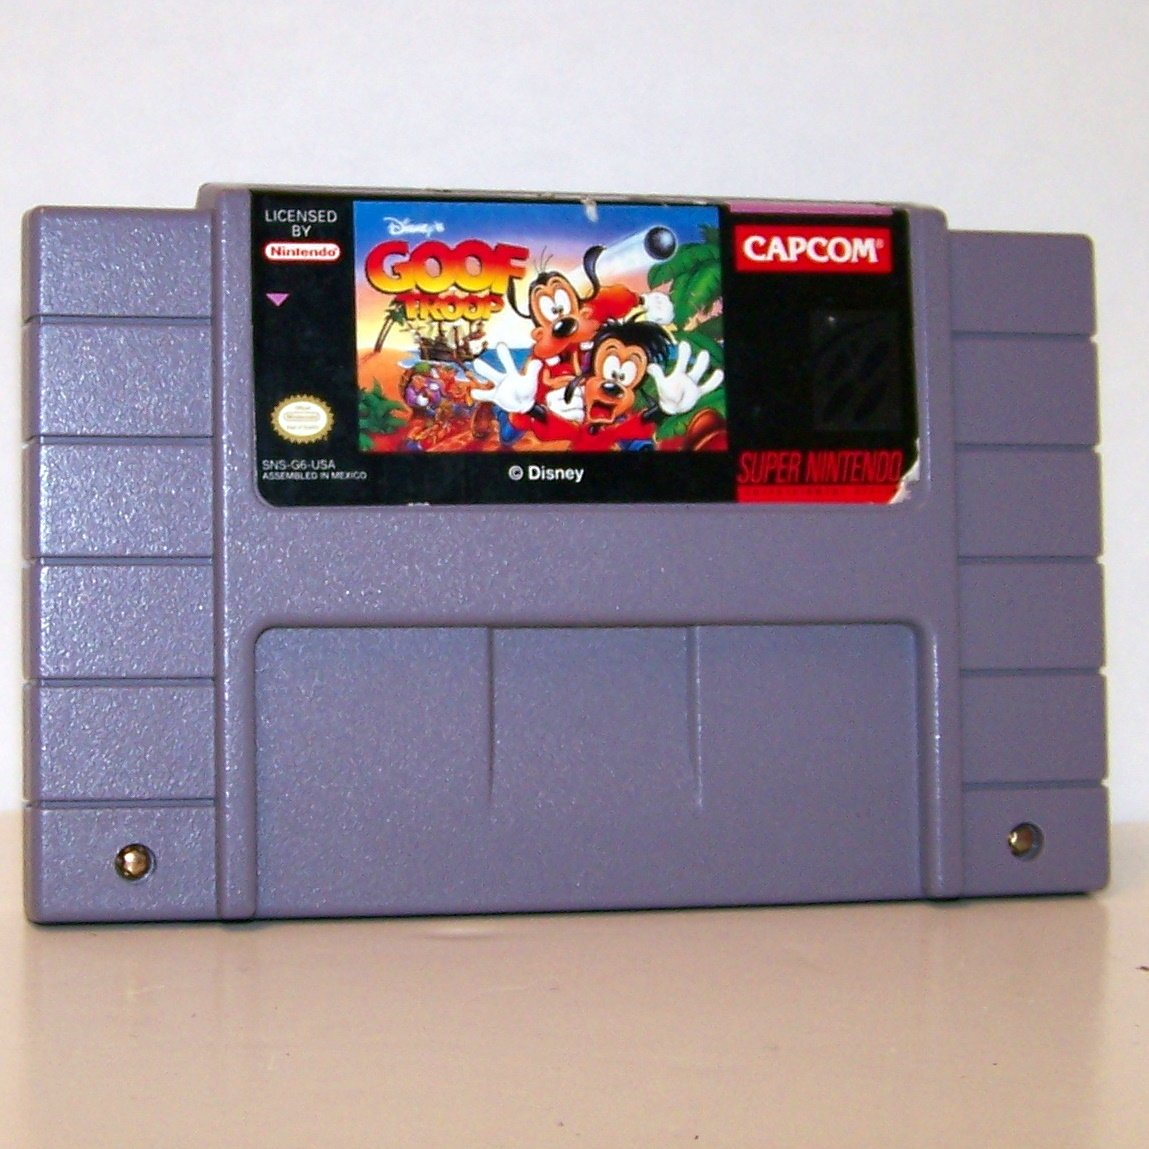 Goof Troop Super Nintendo Game Cartridge